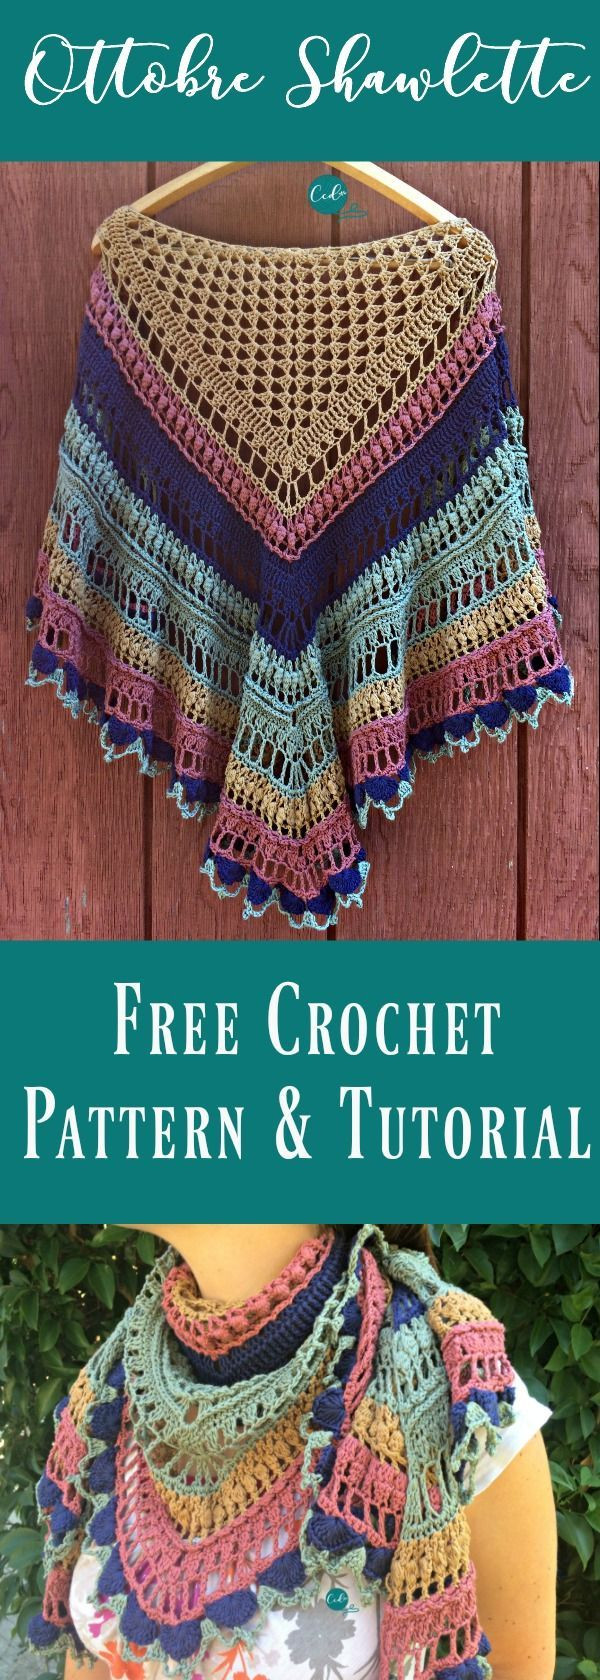 Best Of Best 25 Crochet Prayer Shawls Ideas On Pinterest Crochet Shawl Tutorial Of Attractive 40 Ideas Crochet Shawl Tutorial